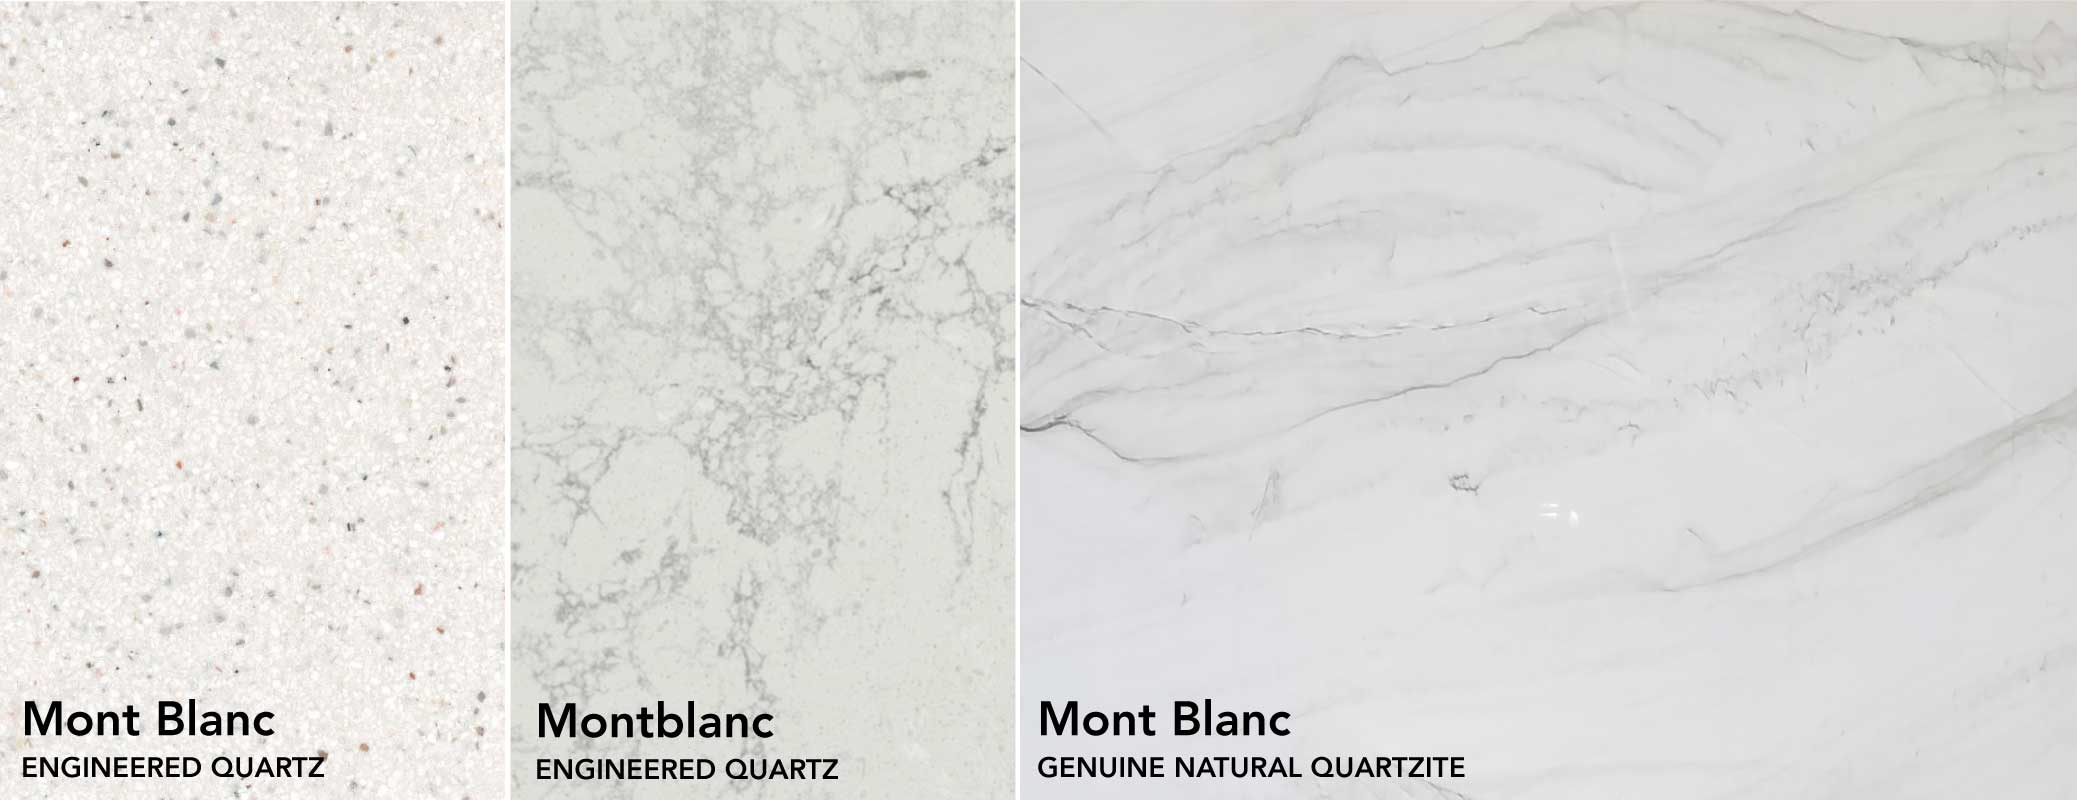 Differences Between Quartz And Other Natural Stones